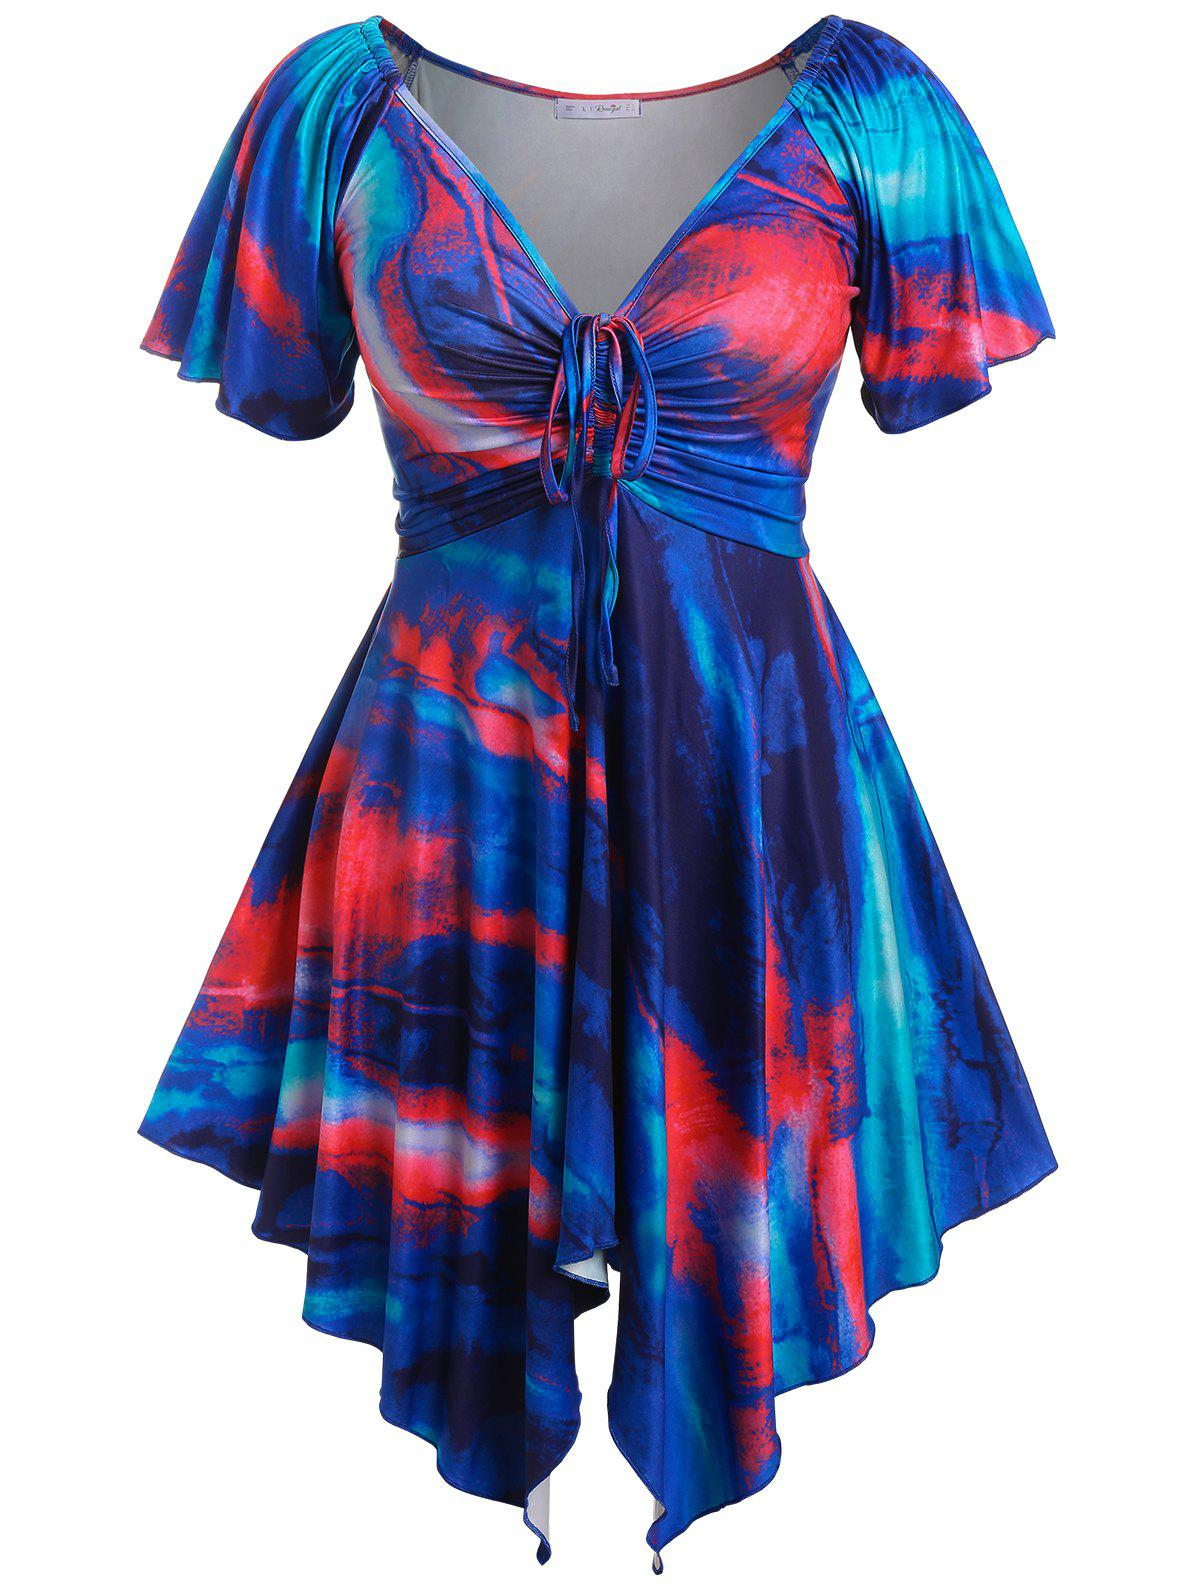 Plus Size Raglan Sleeve Tie Dye Handkerchief Dress - BLUE L